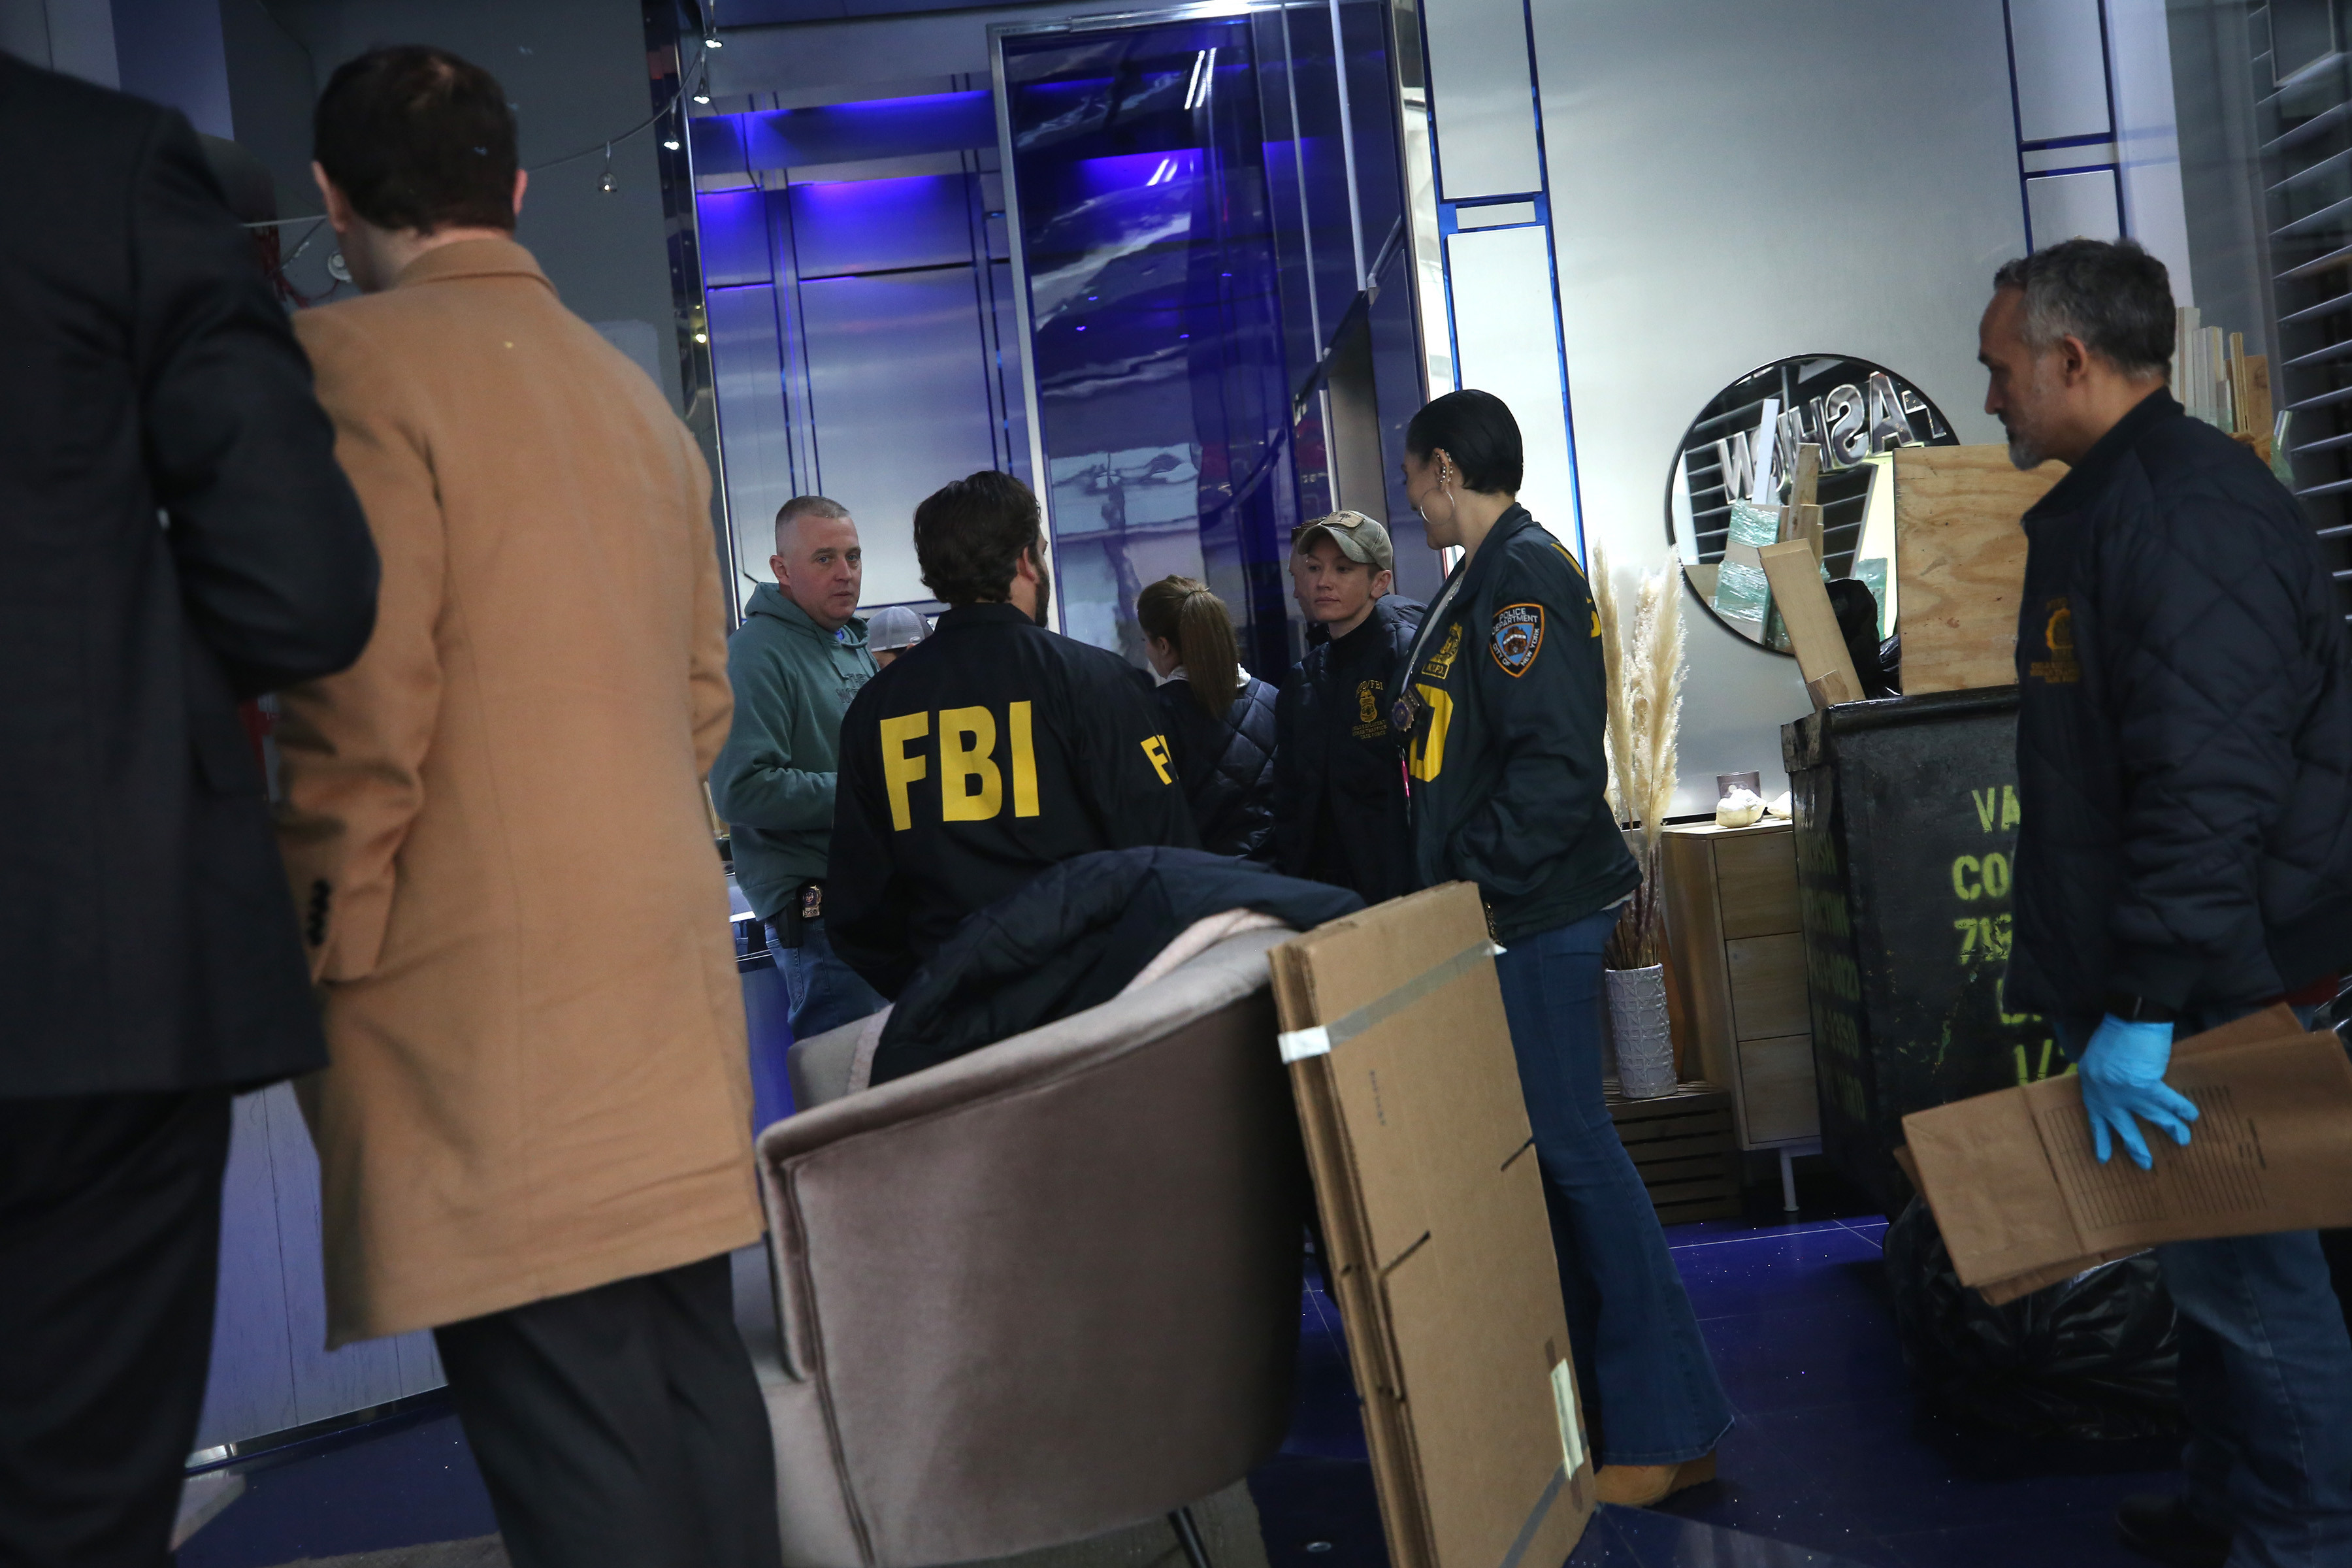 The FBI and the New York Police Department raided Nygard's headquarters in New York on Feb. 25, 2020. Media reported it was part of an investigation into sexual assault allegations. (Earl Wilson/The New York Times )